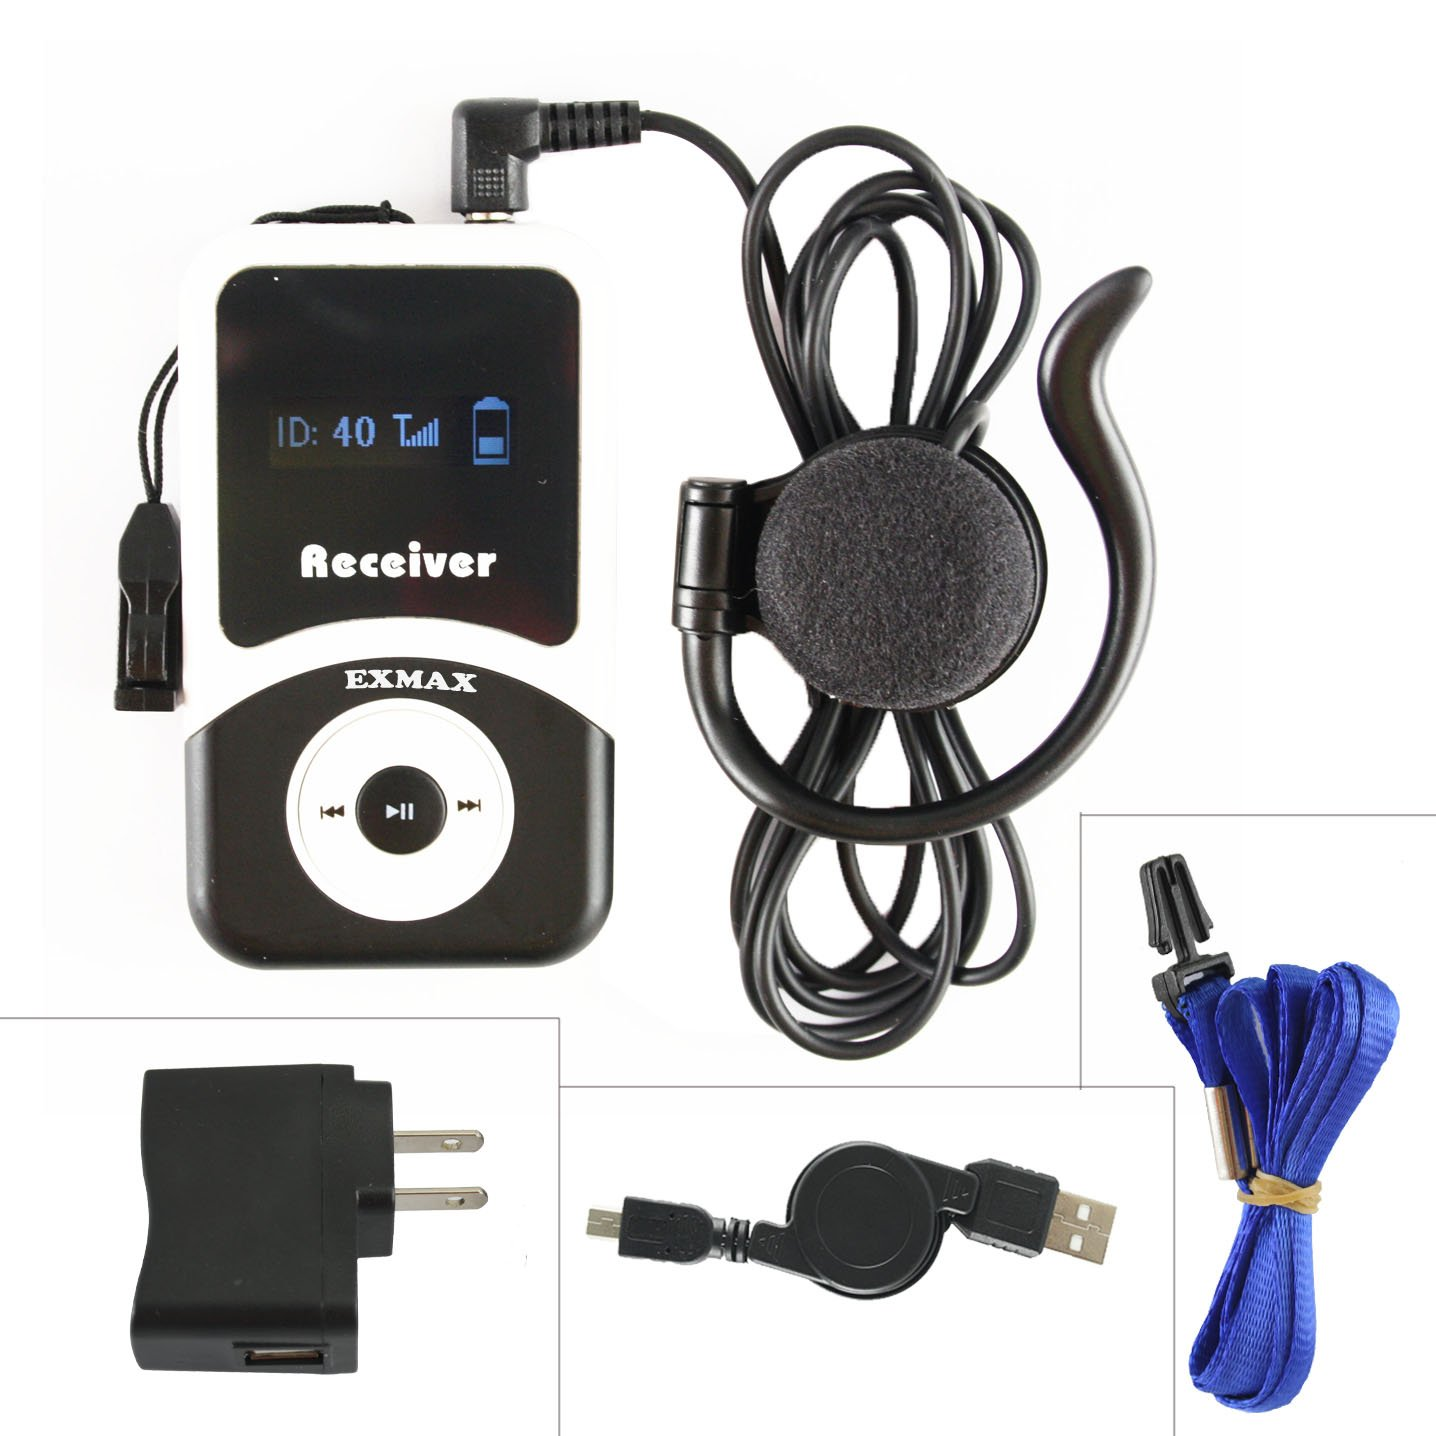 EXMAX ATG-100T 72-76MHz Receiver for Wireless Tour Guide Monitoring Acoustic Audio Voice Transmission System Earphone For Church Interpreting Teaching Conference Travel Museum Translation(1 Receiver)